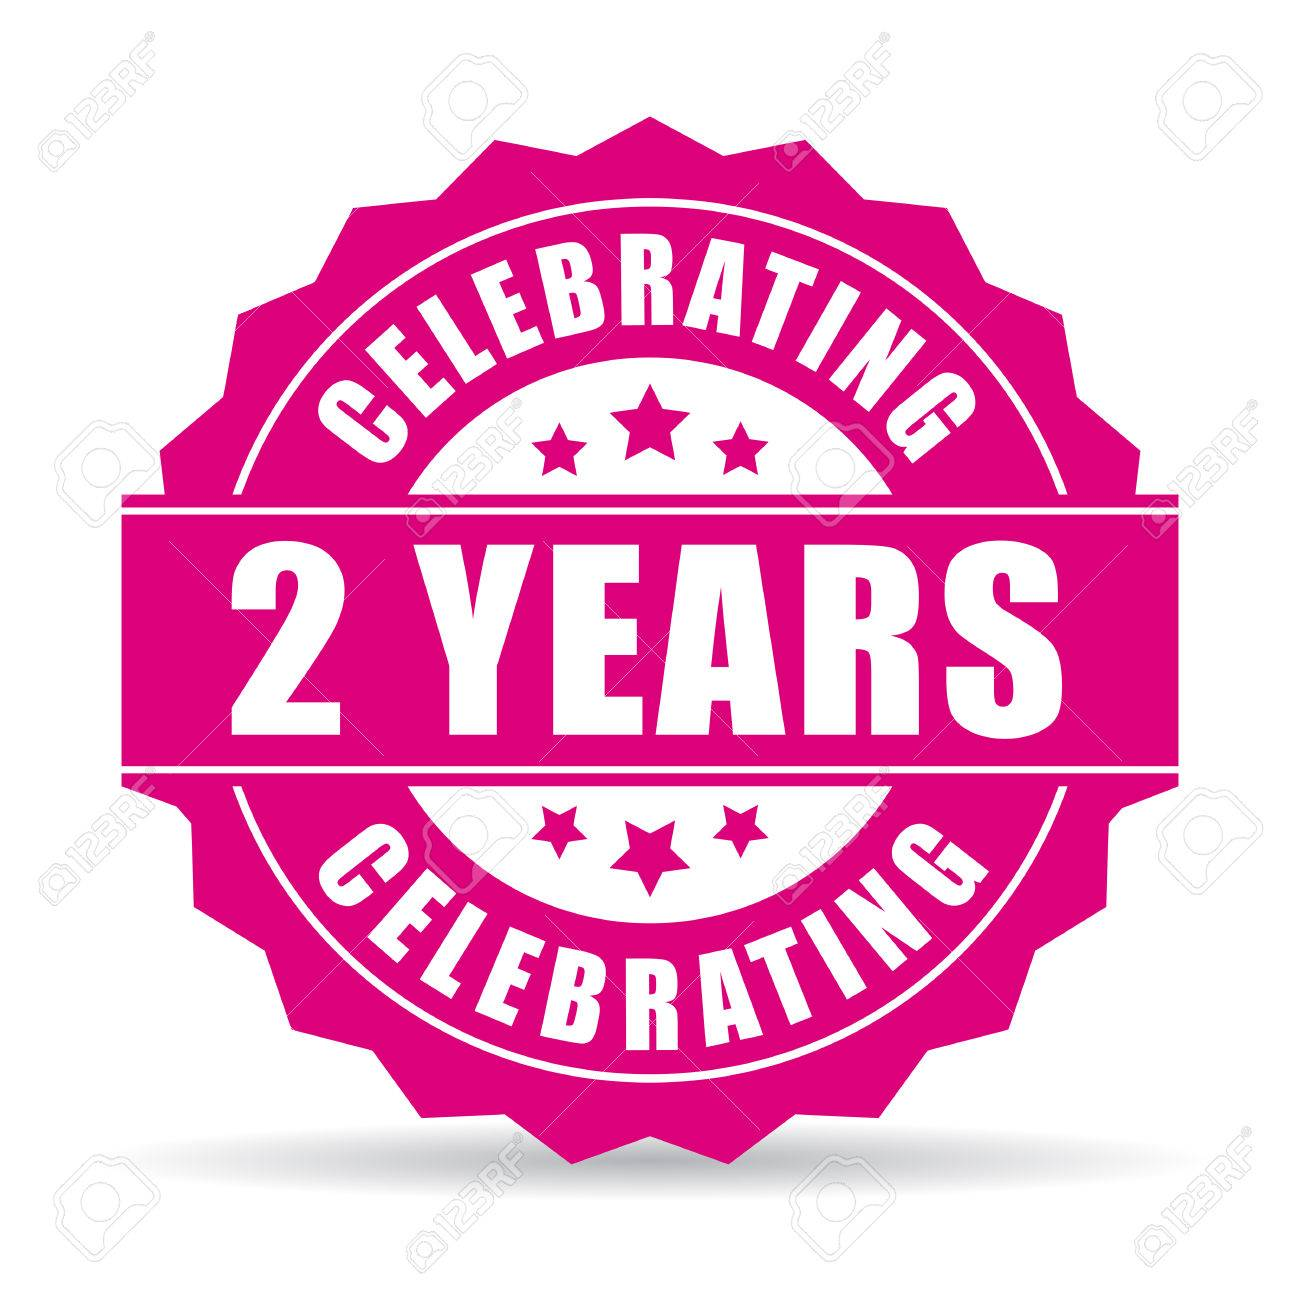 Two Years Anniversary Celebrating Icon Royalty Free Cliparts Vectors And Stock Illustration Image 66779612